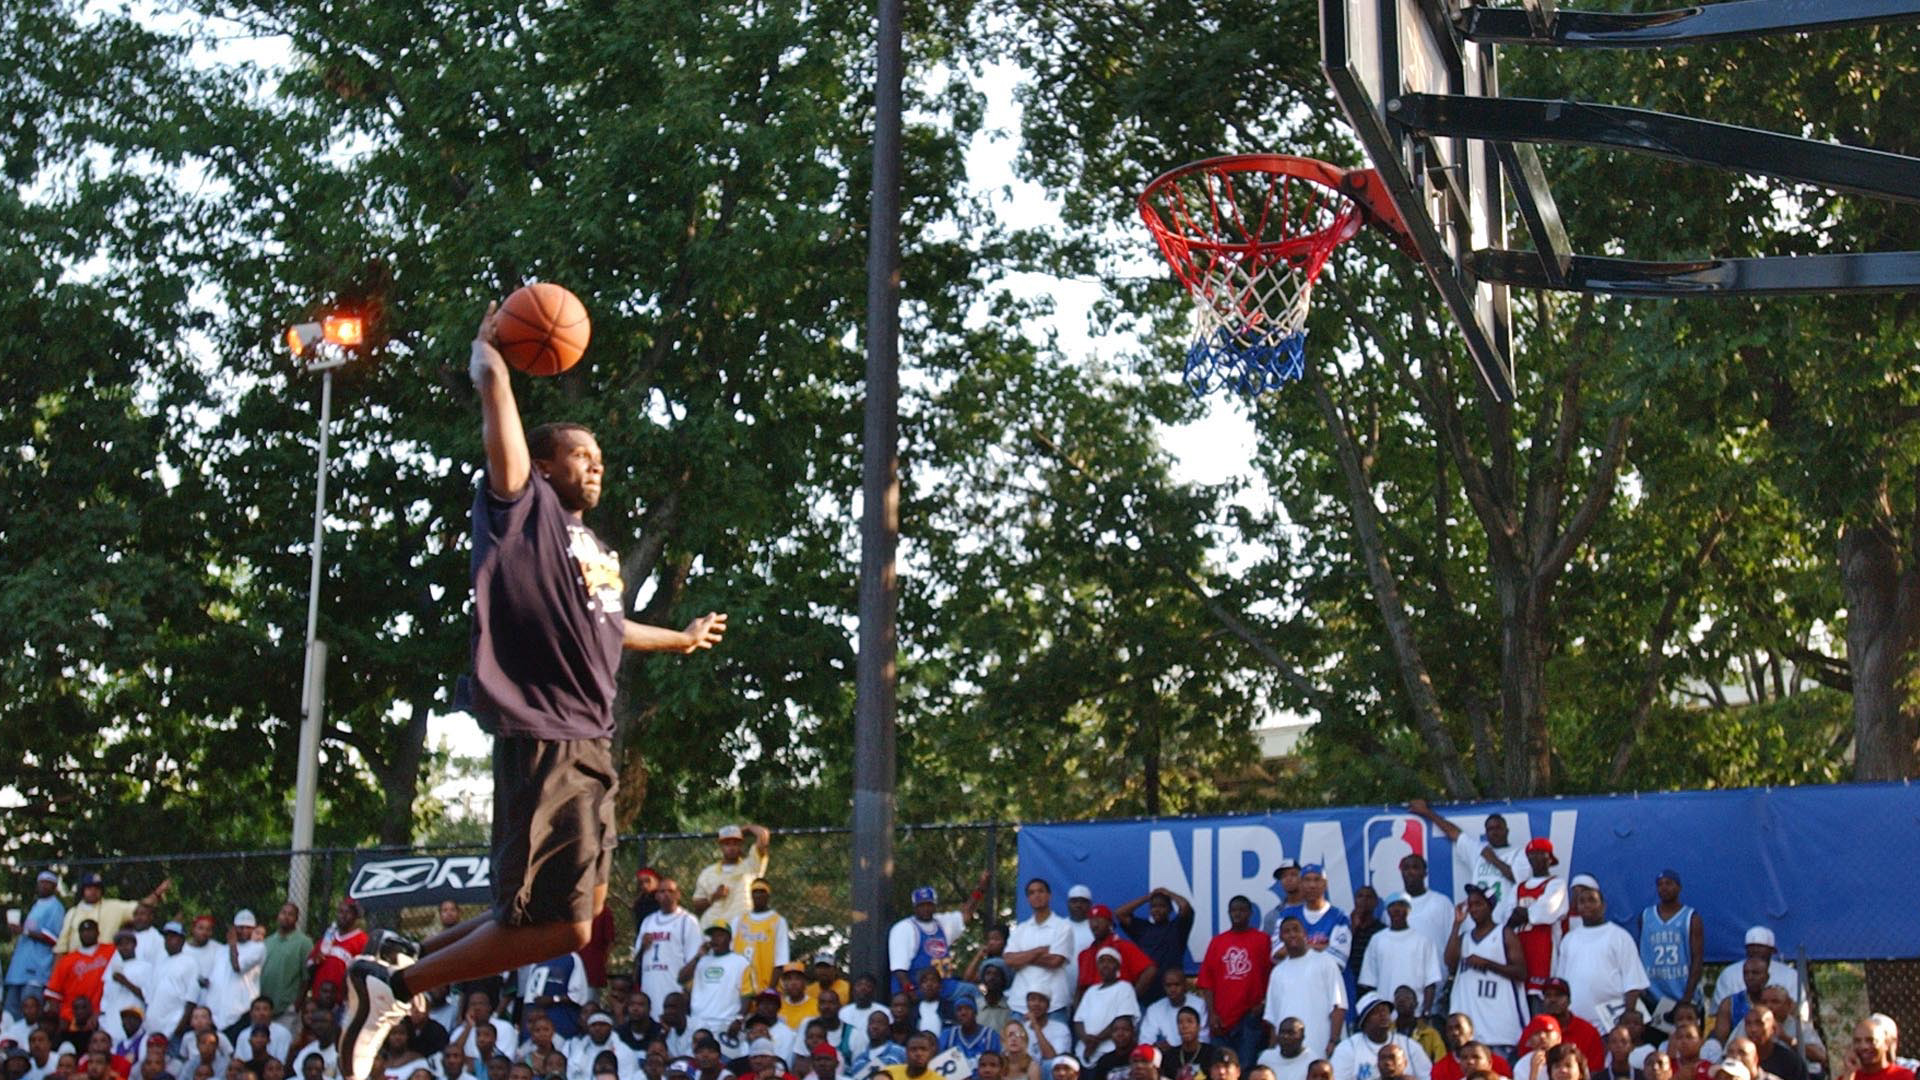 Harlem S Rucker Park Rich In Basketball History And Black History